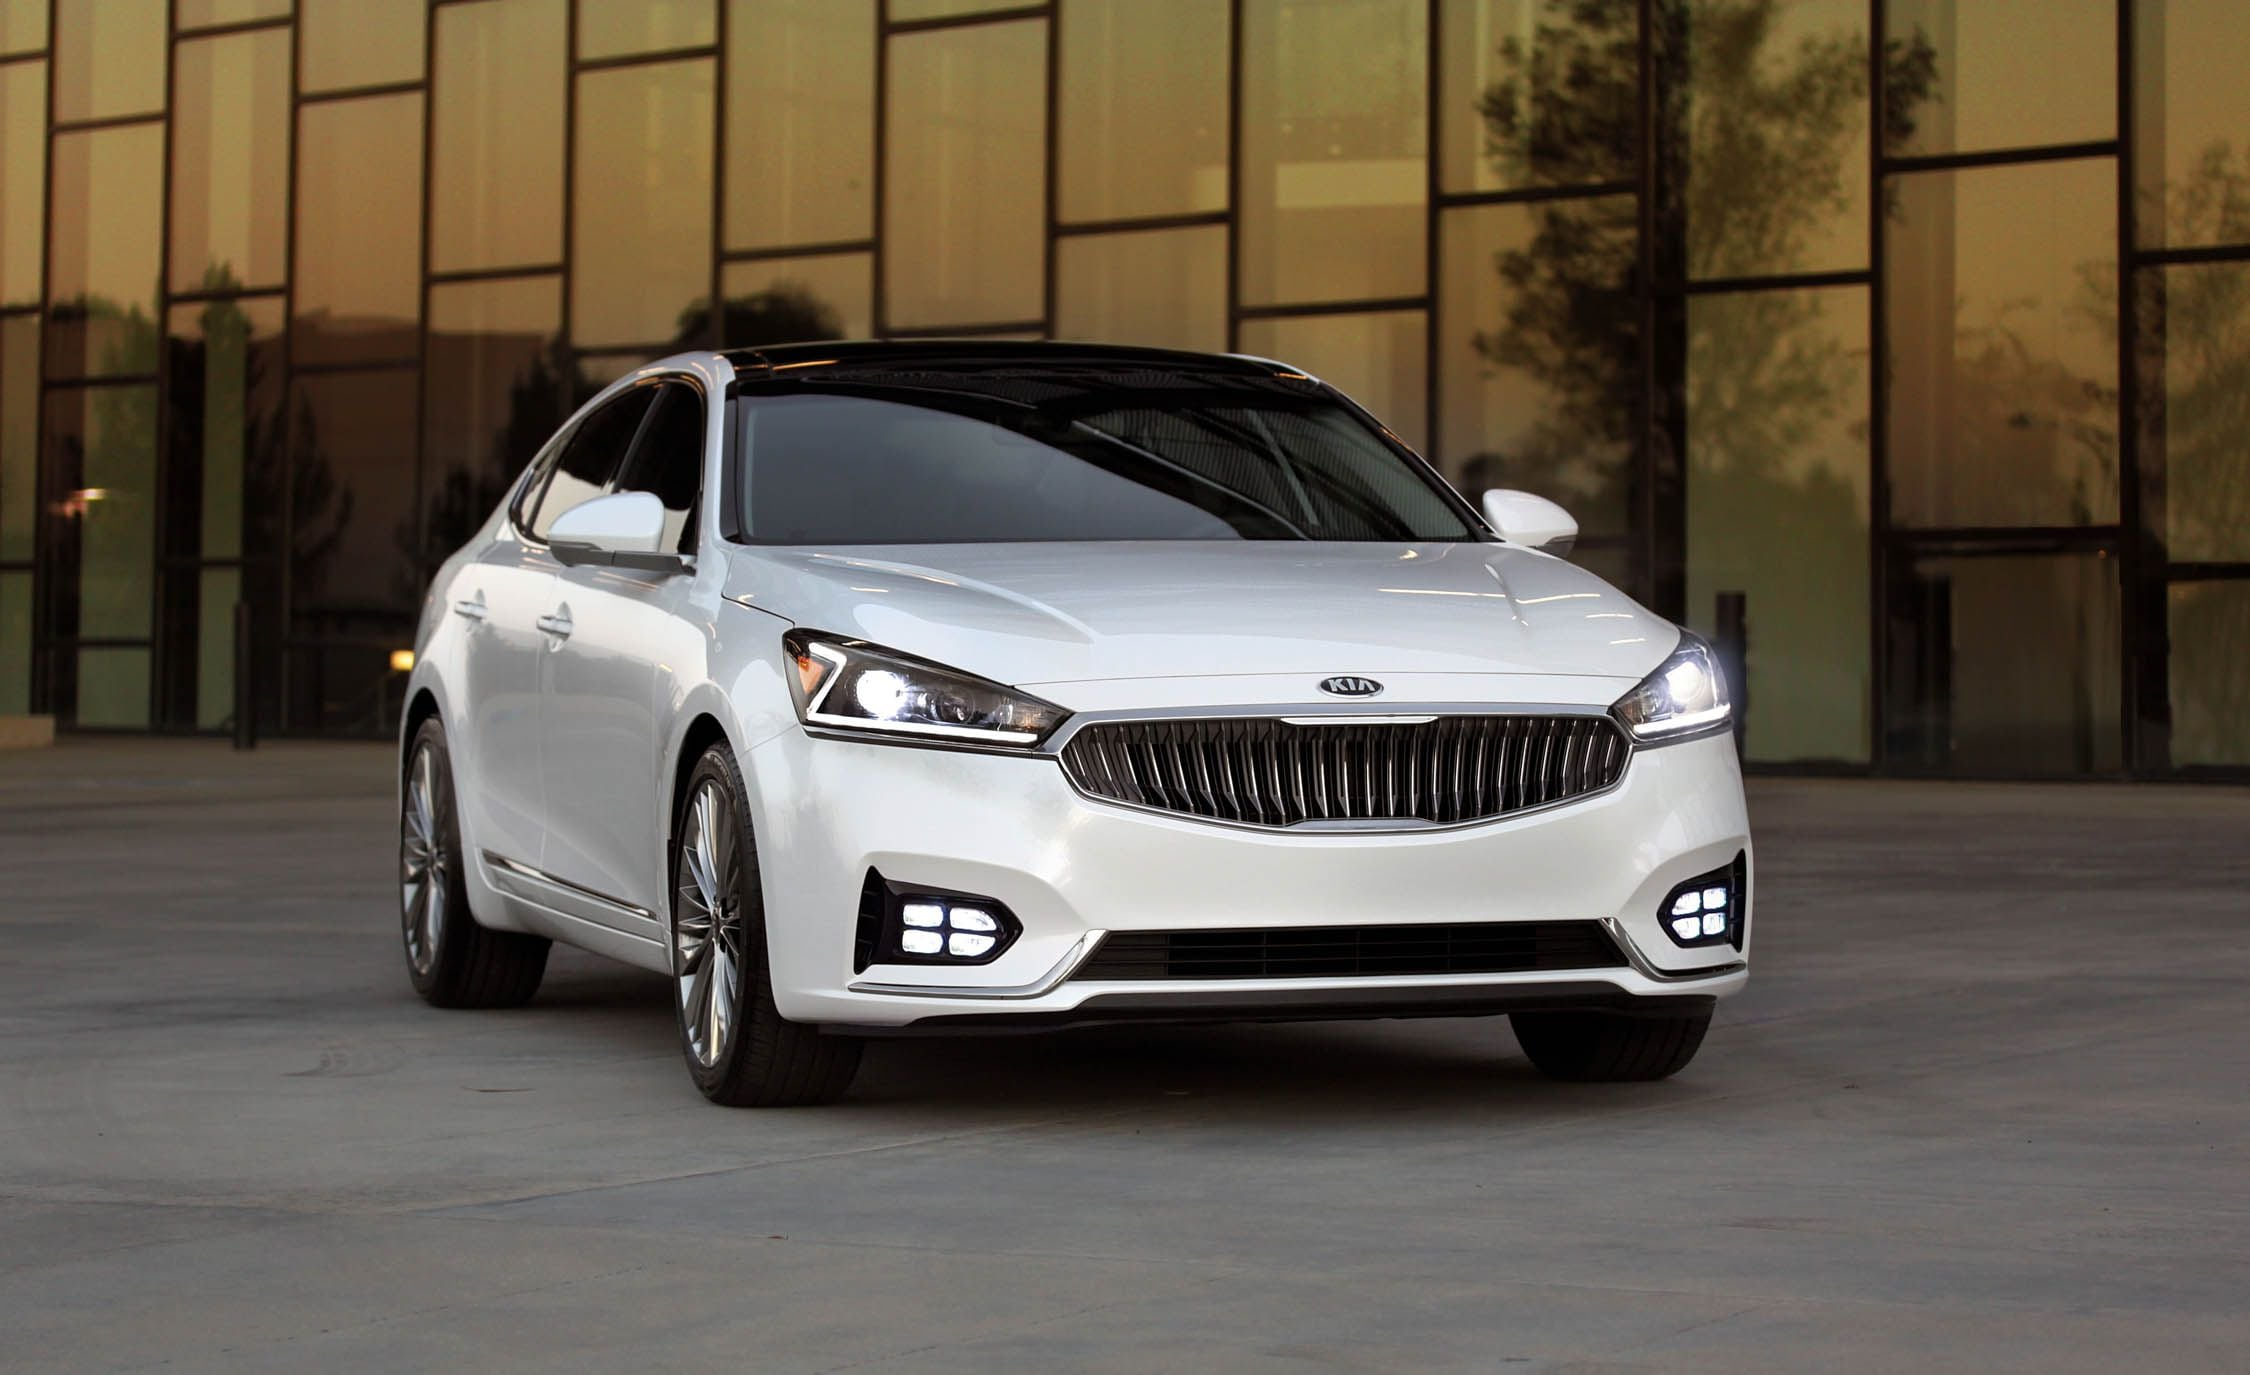 2019 Kia Cadenza Luxury Car